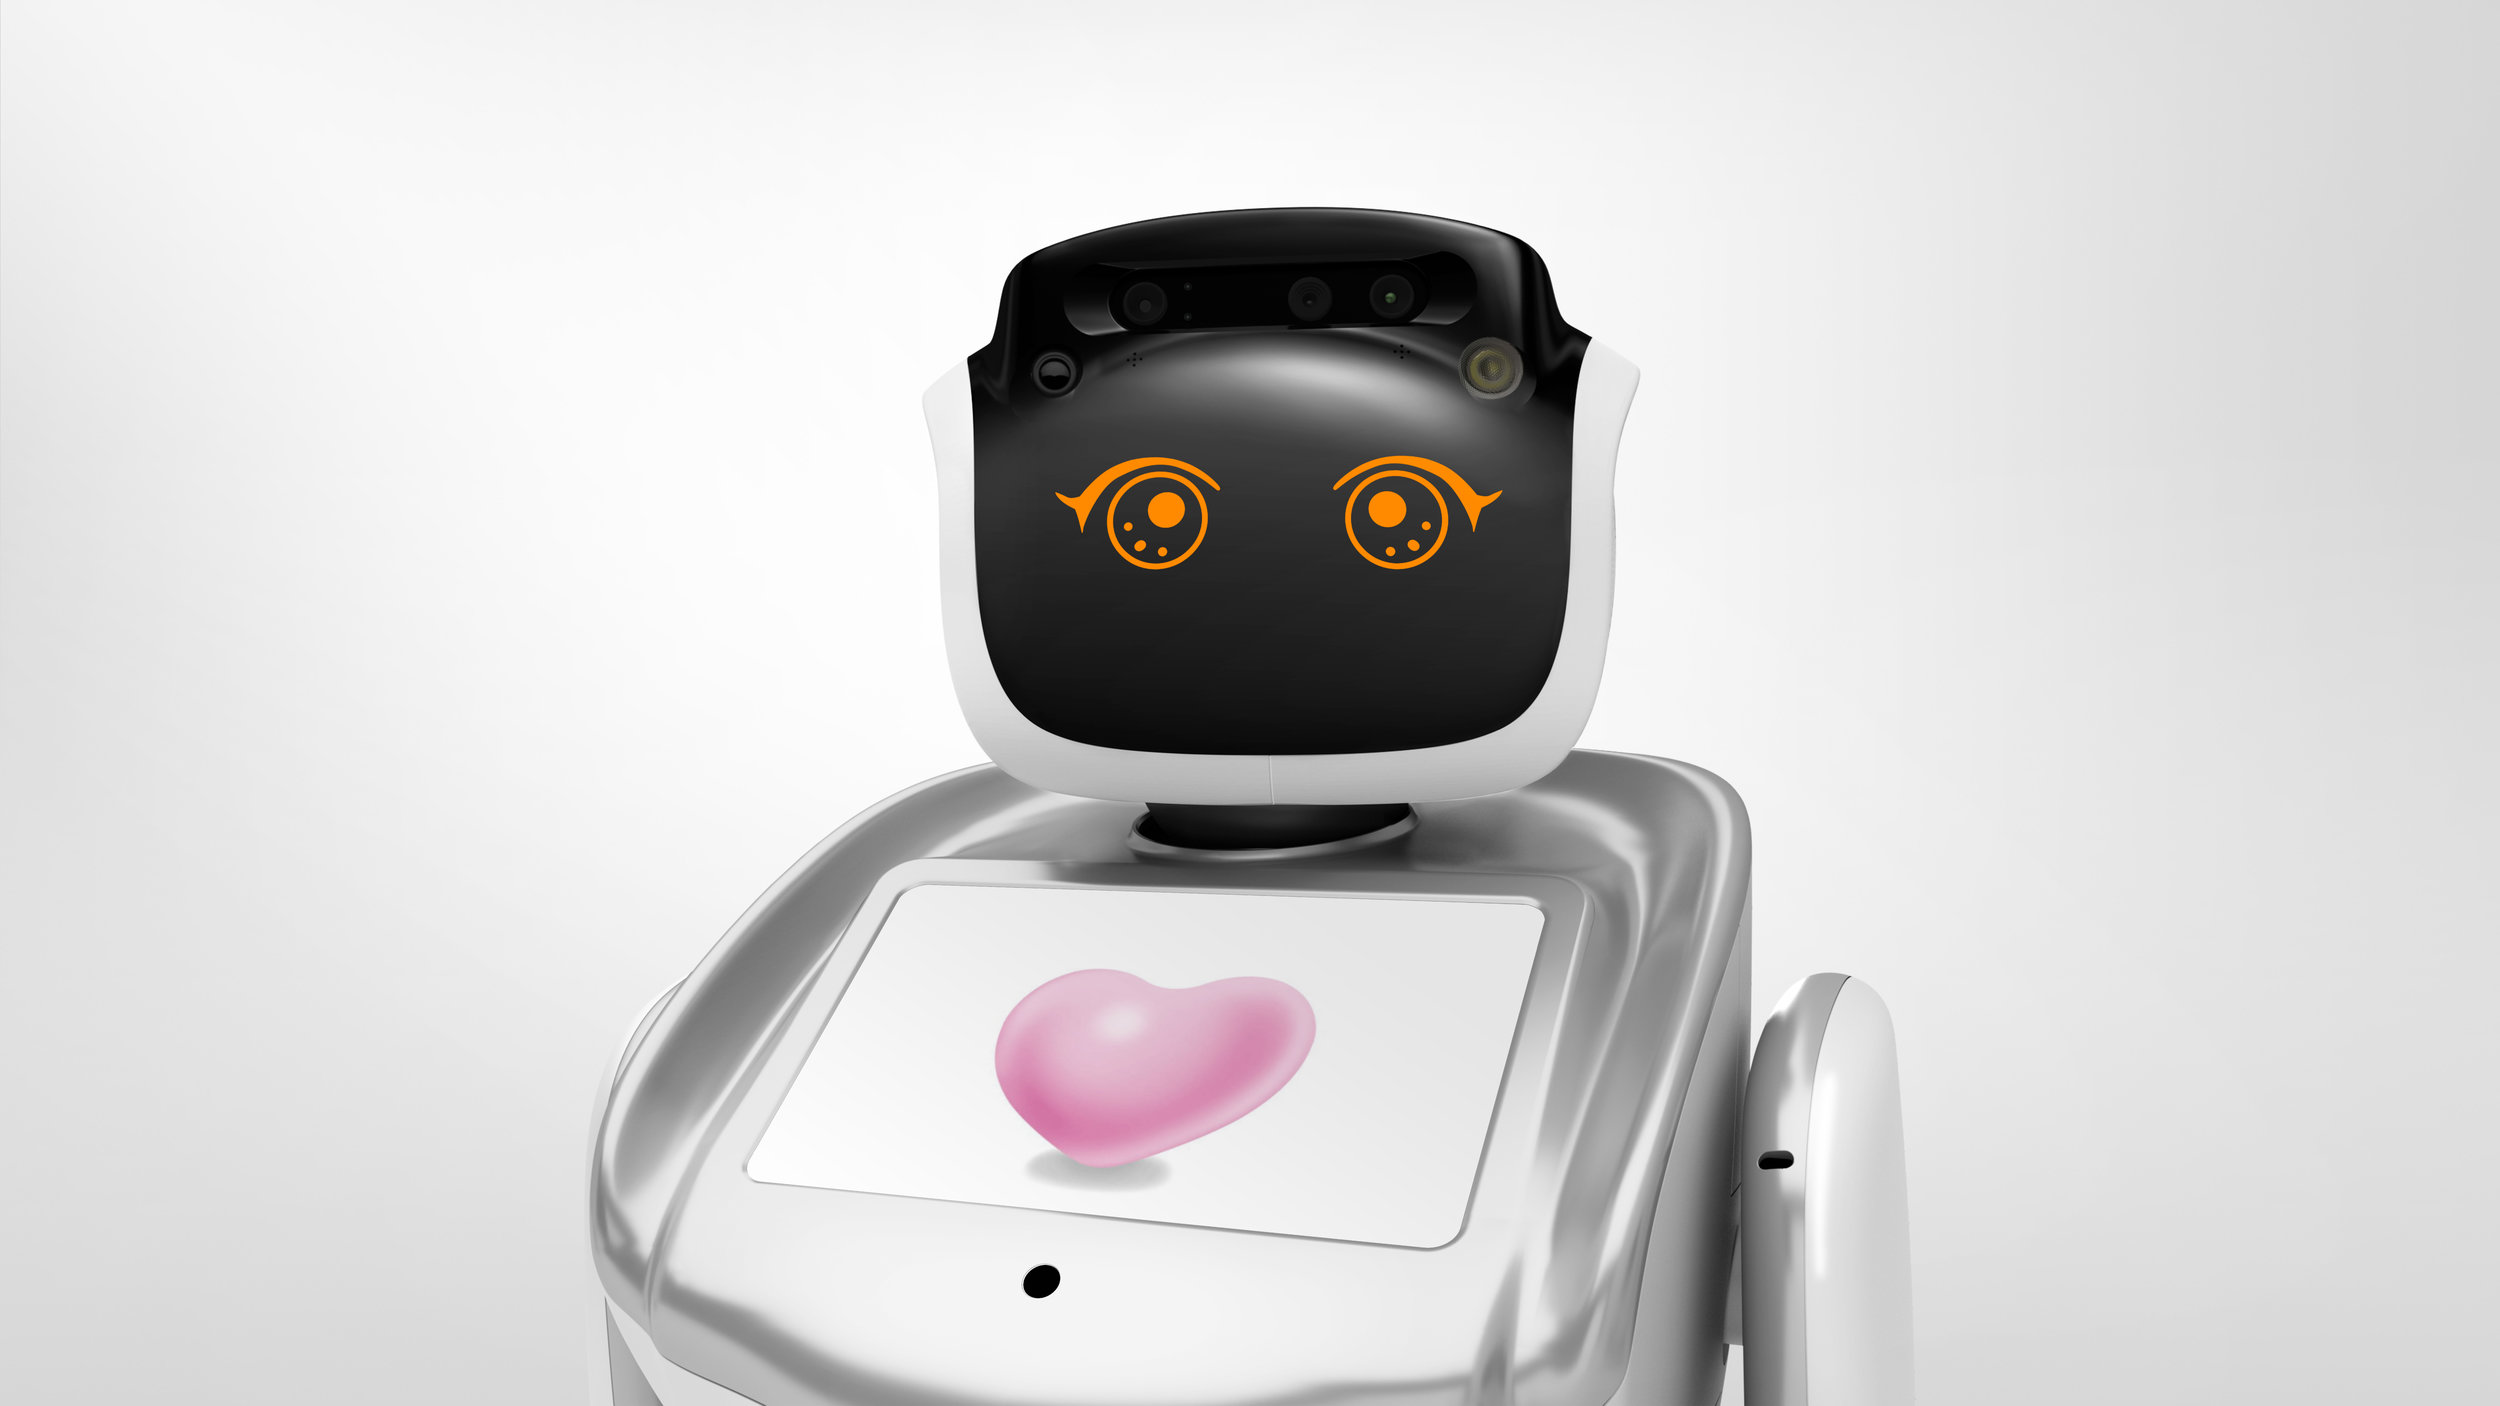 sanbot with various emotions - Sanbot is able to show a large number of different emotions